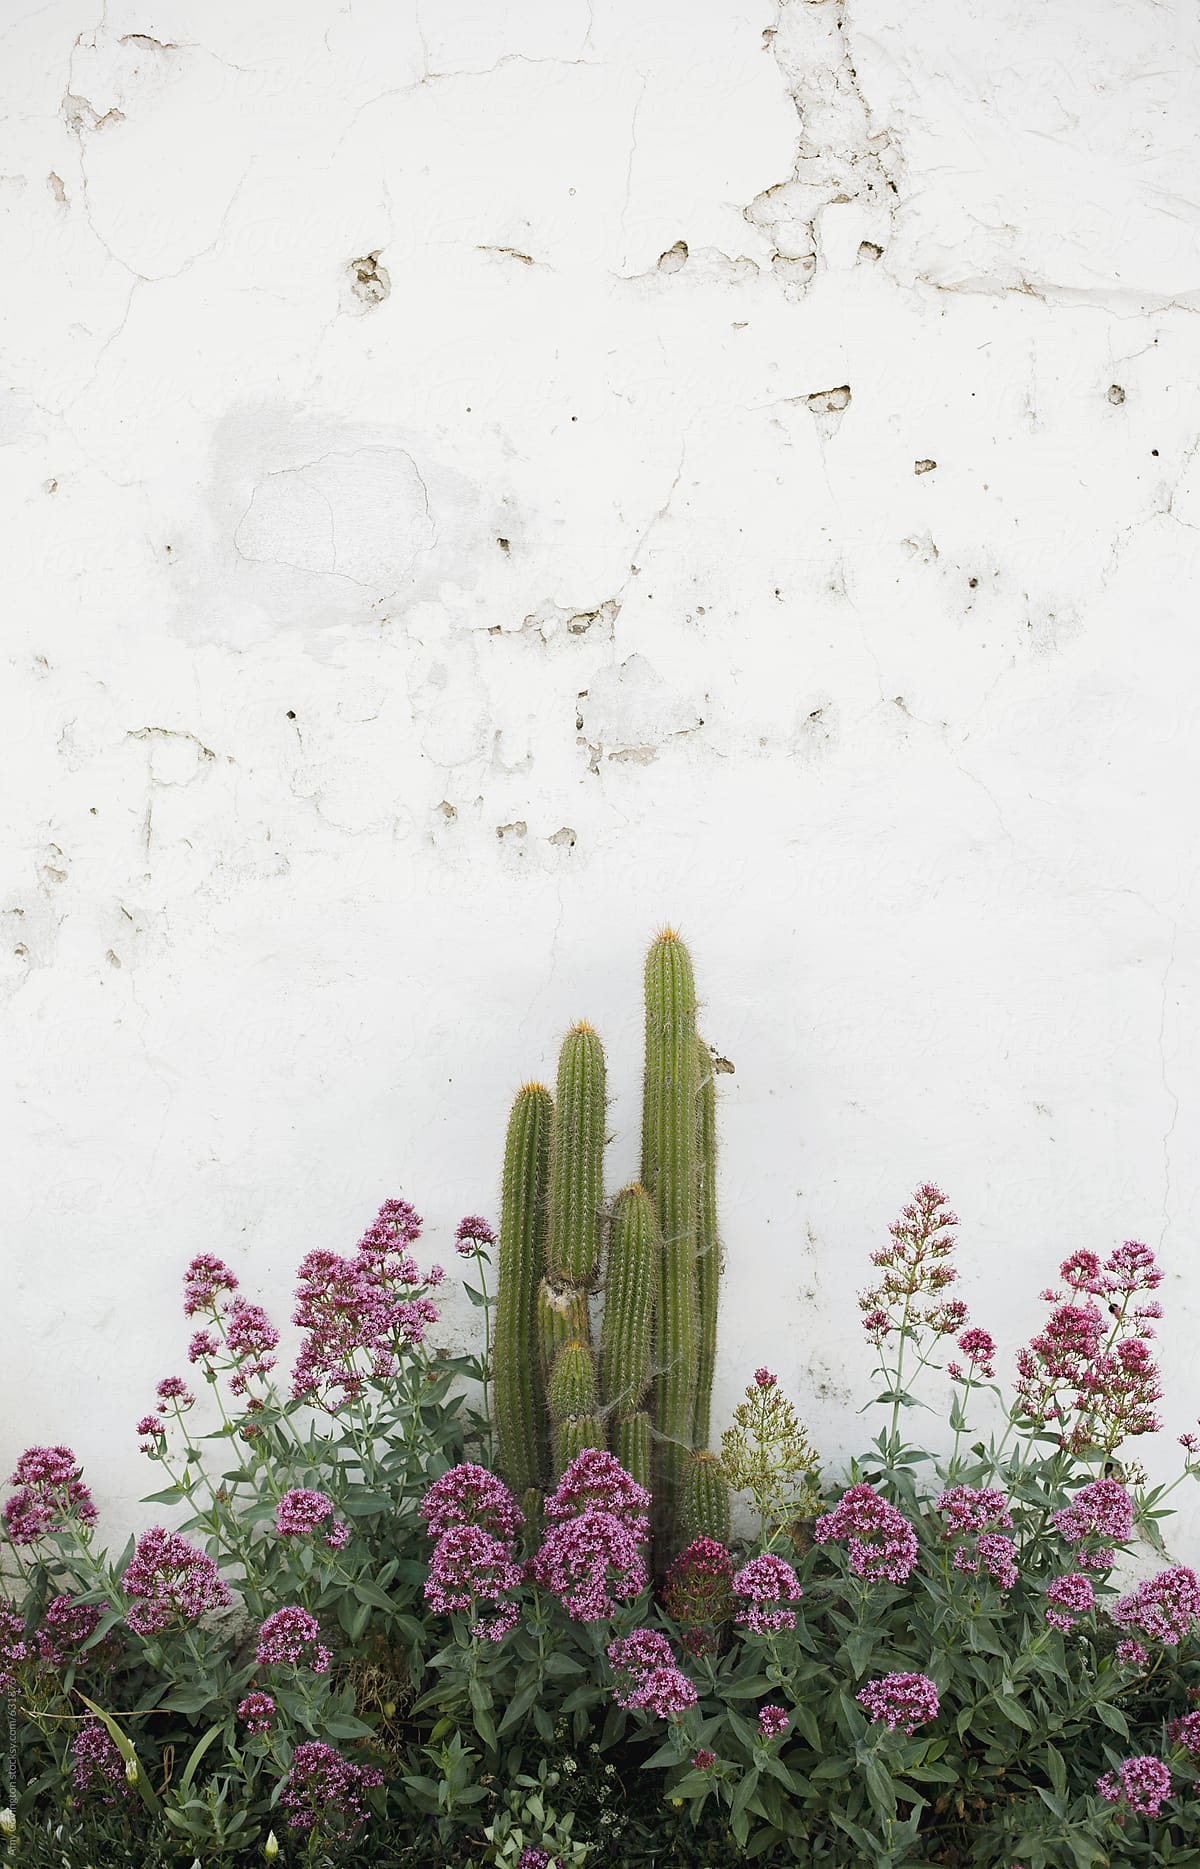 Cactus and pink flowers on white adobe wall stocksy united cactus and pink flowers on white adobe wall by amy covington for stocksy united mightylinksfo